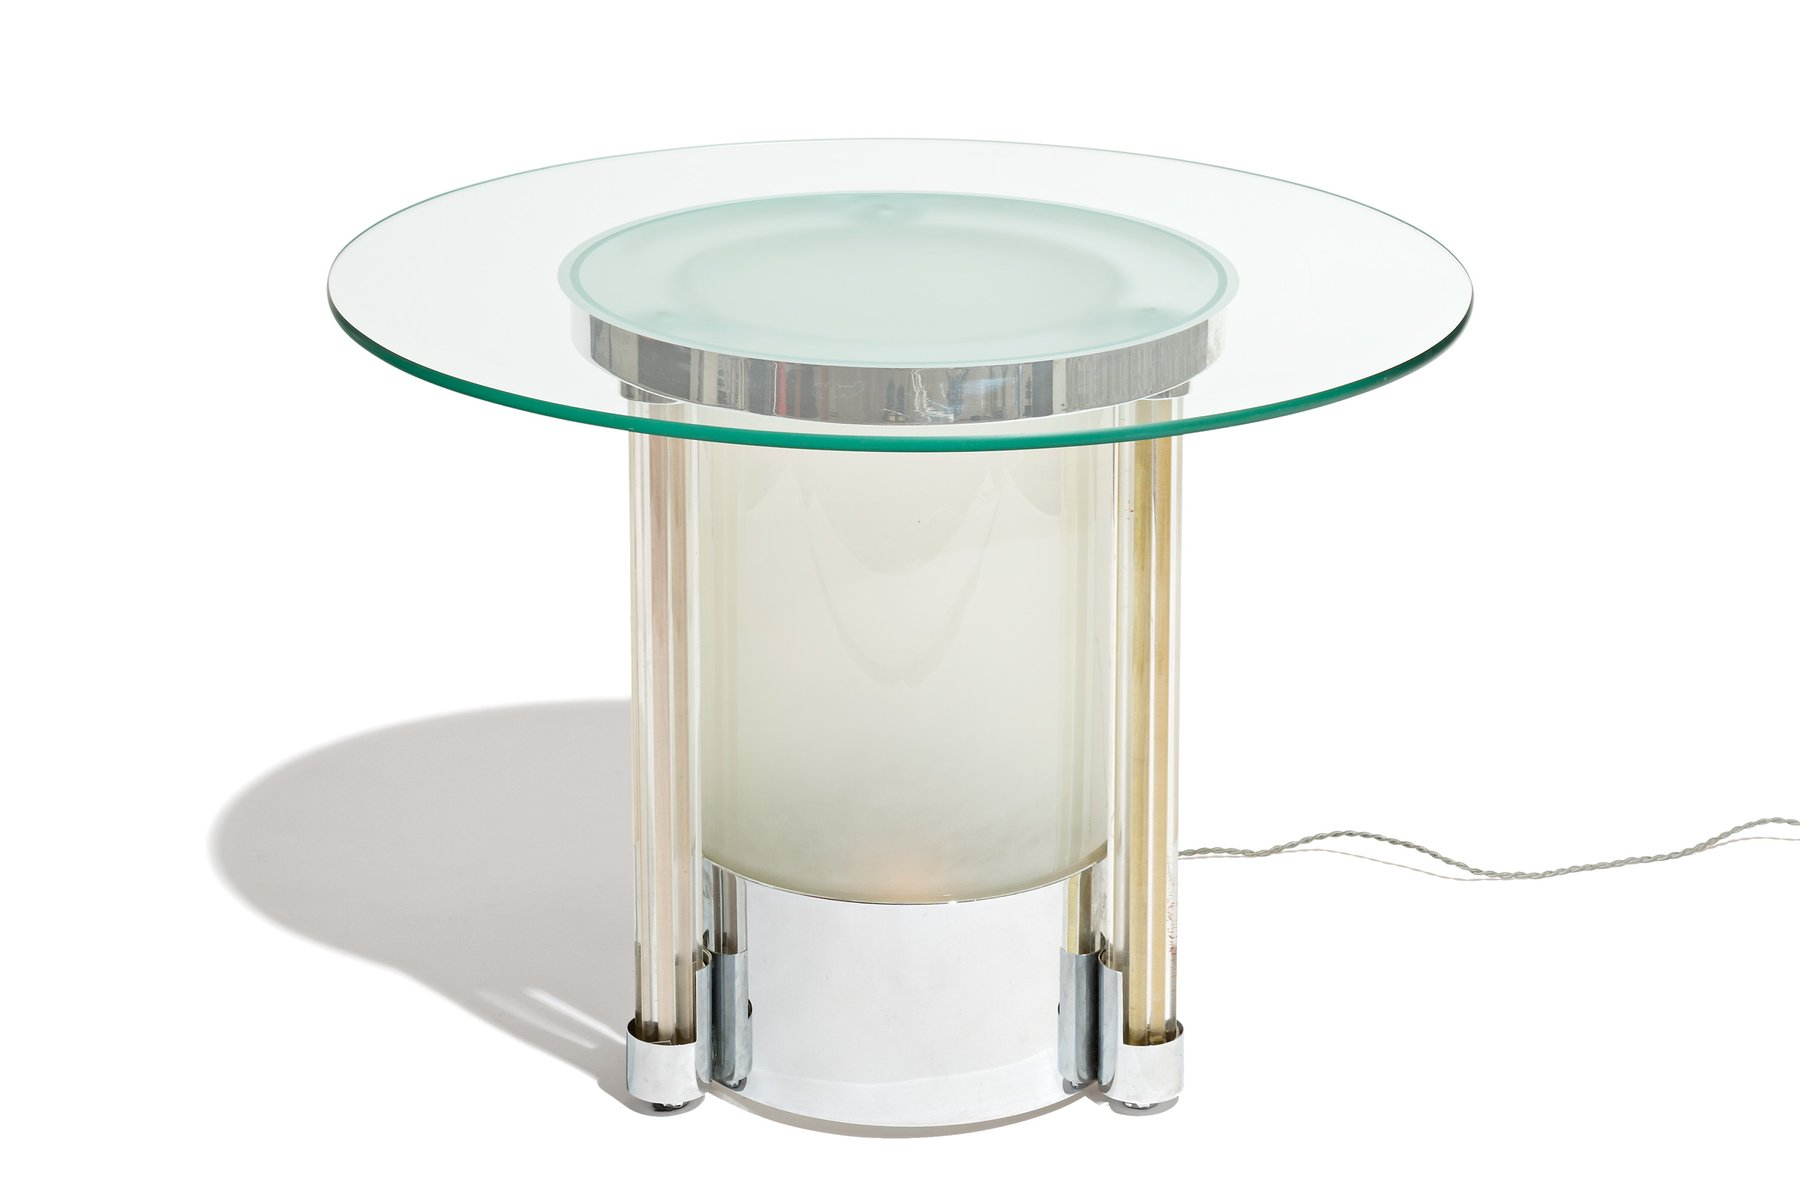 High Quality Vintage Illuminated Art Deco Side Table For Sale At Pamono